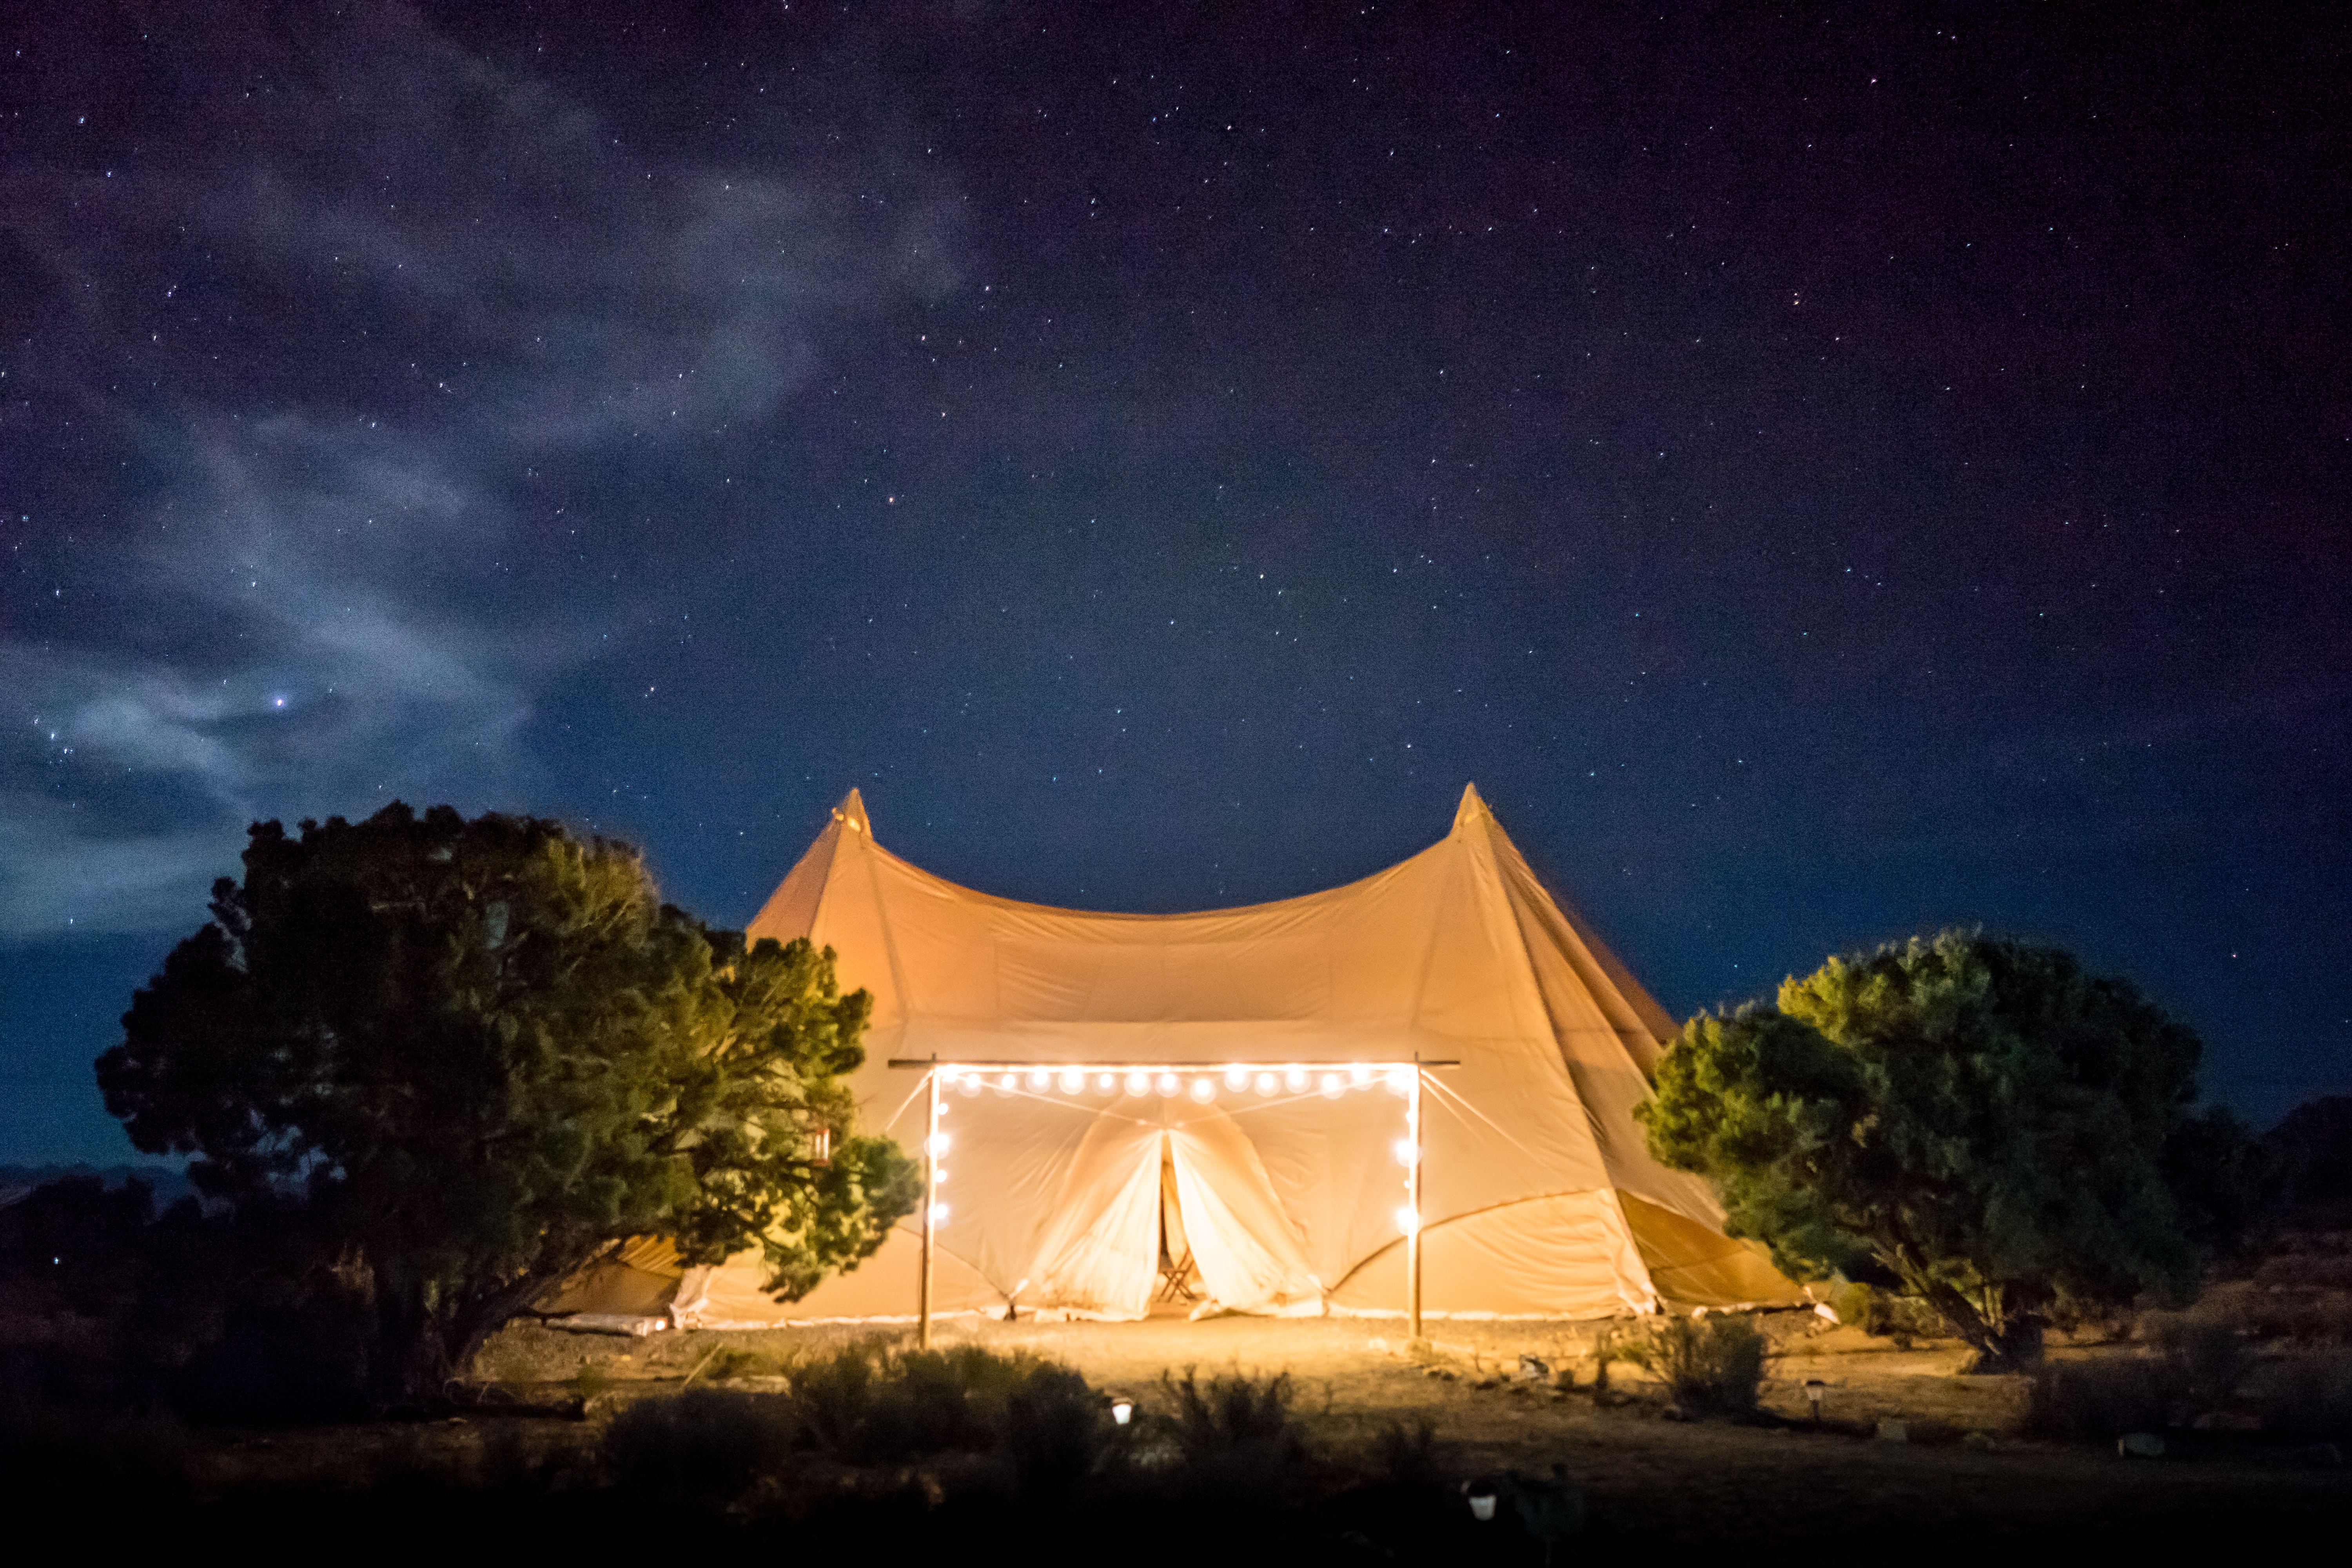 A glamping site surrounded by twinkly lights and trees in the desert under a starry night sky